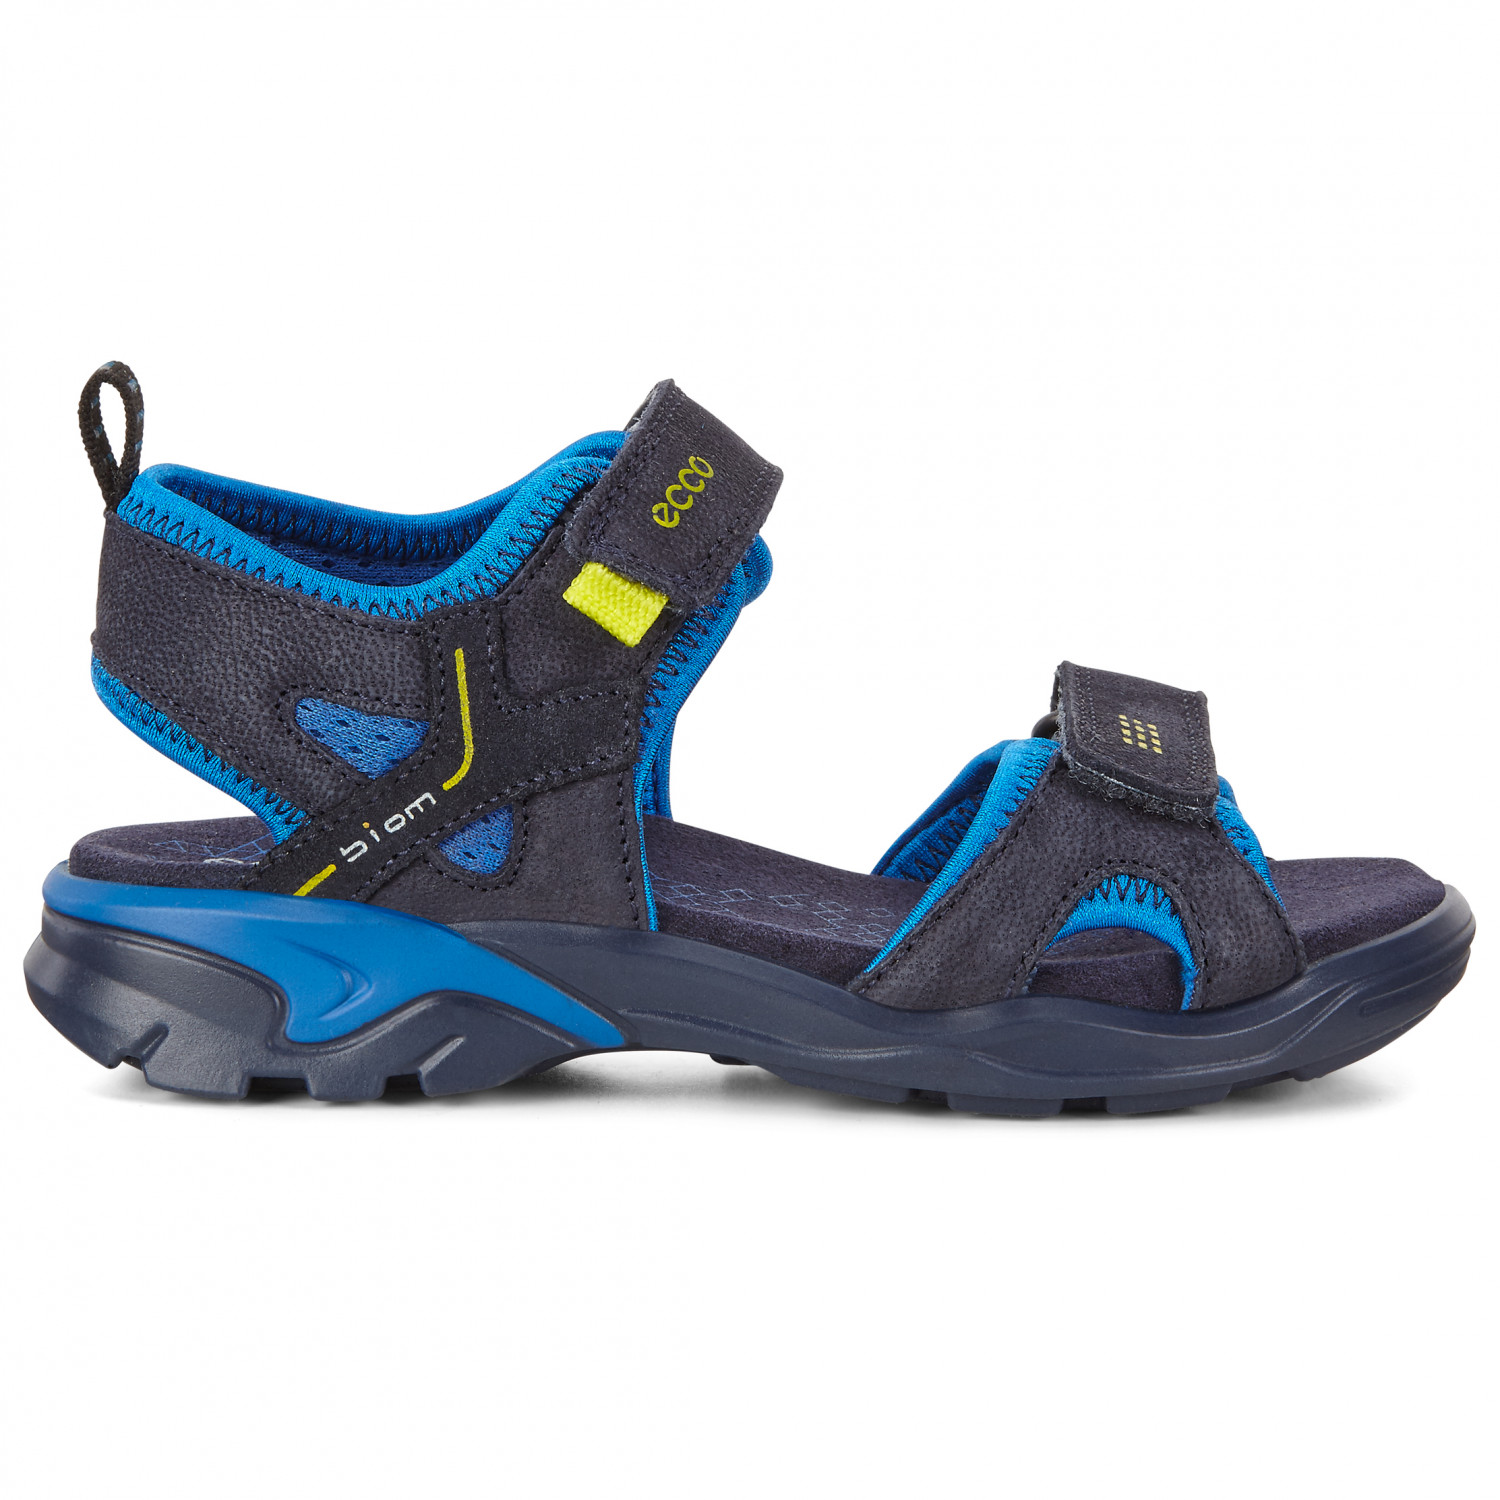 ce5549959f Ecco Biom Raft Two Straps - Sandals Kids | Free UK Delivery ...